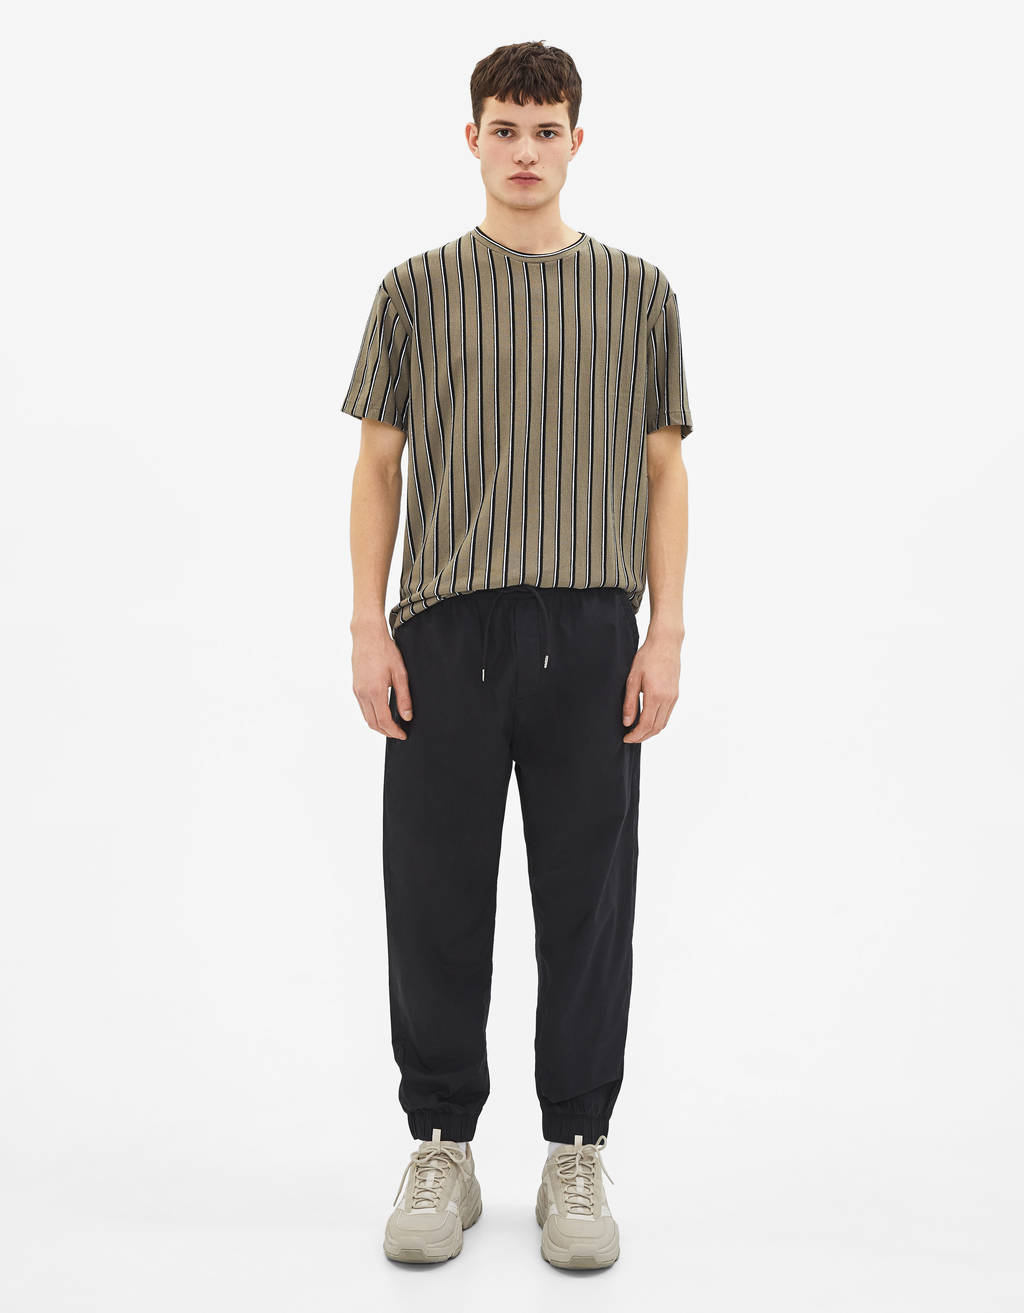 Pantalon jogger coupe ample